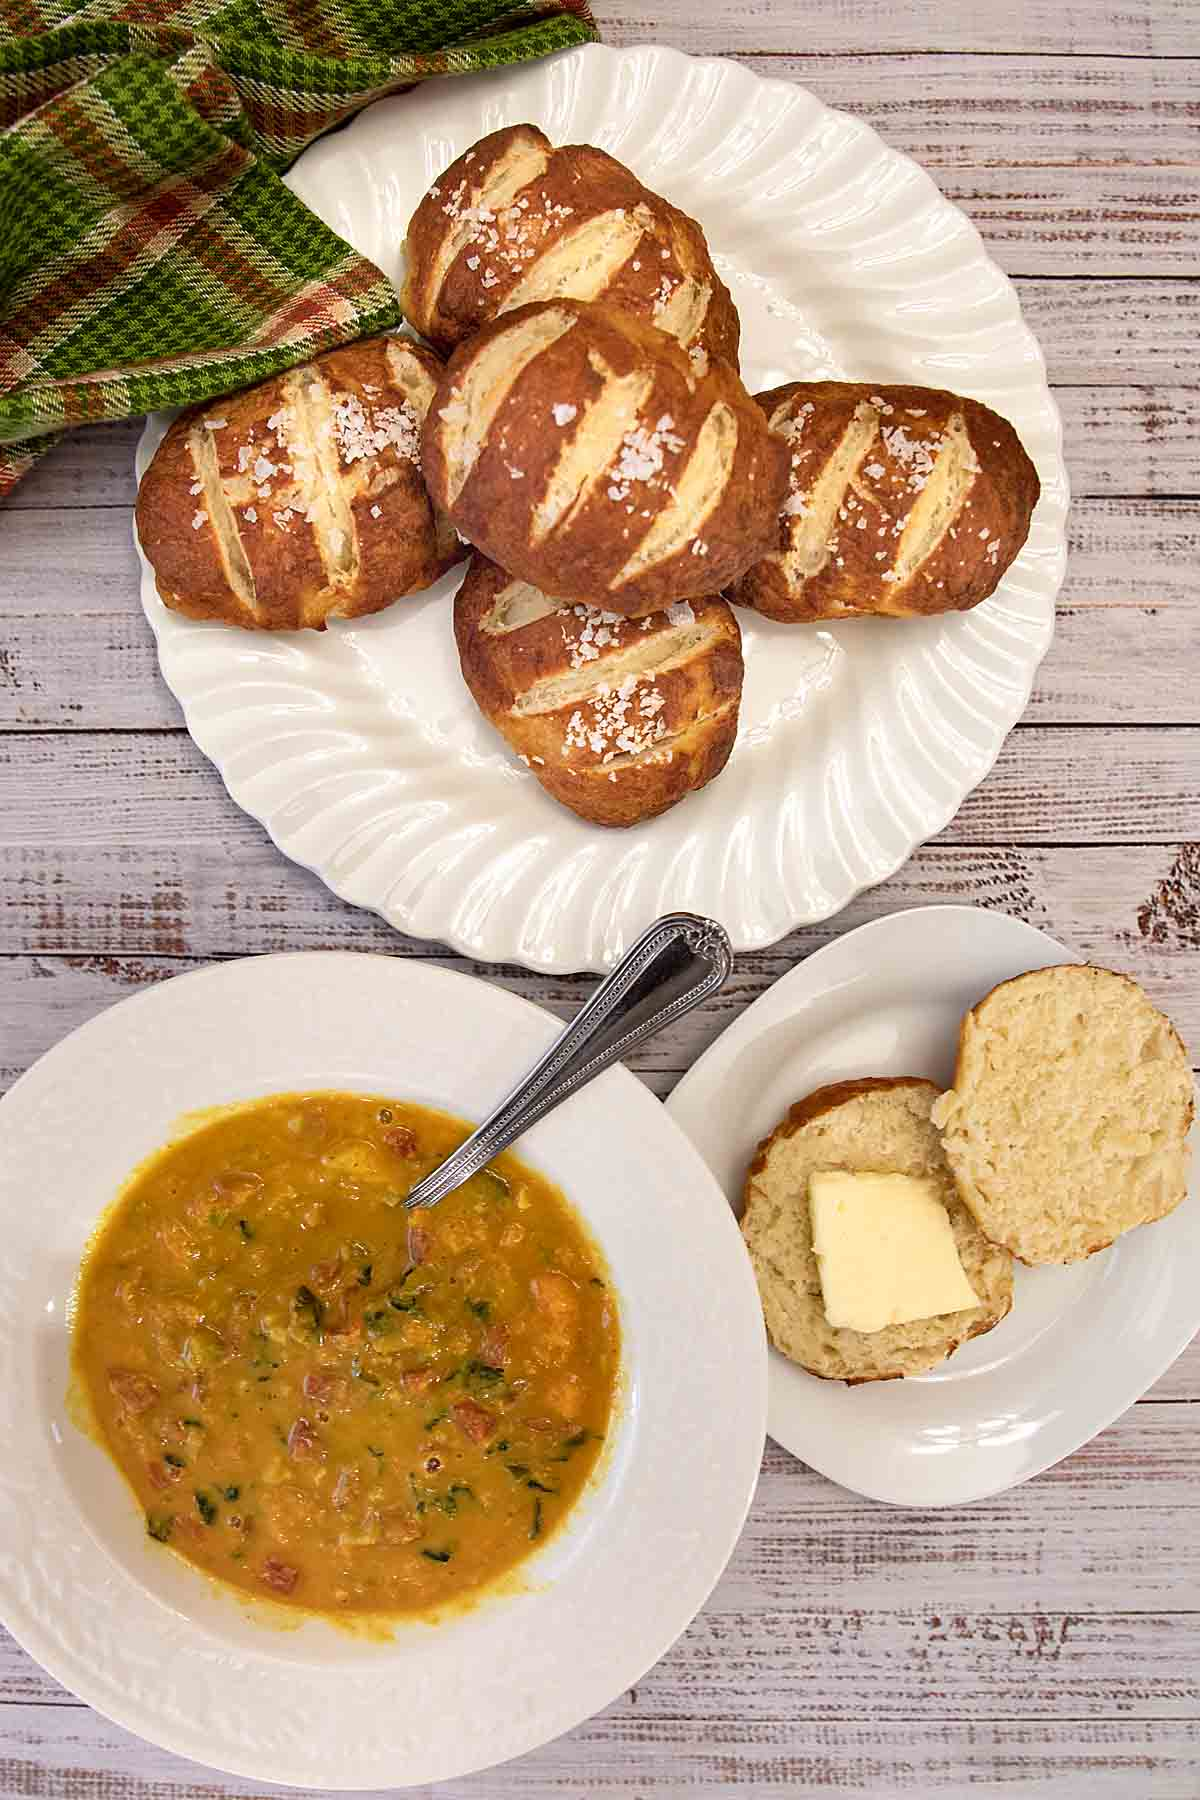 Homemade Pretzel Rolls are chewy, salty and delicious. Use as a sandwich or hamburger bun or as a fun side with lunch or dinner.